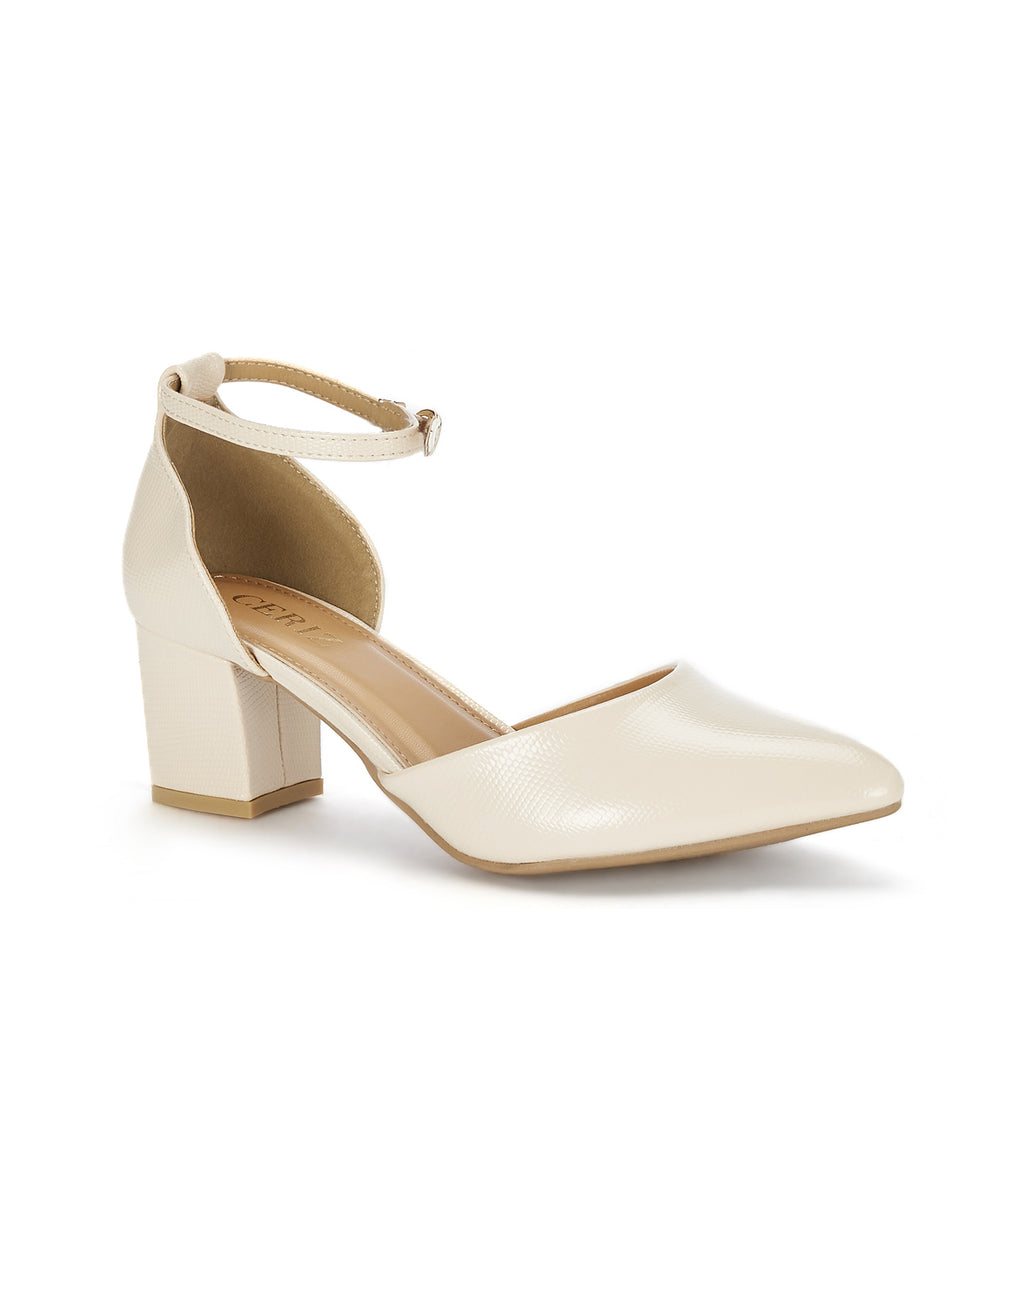 Calliope Sleek Beige Pumps